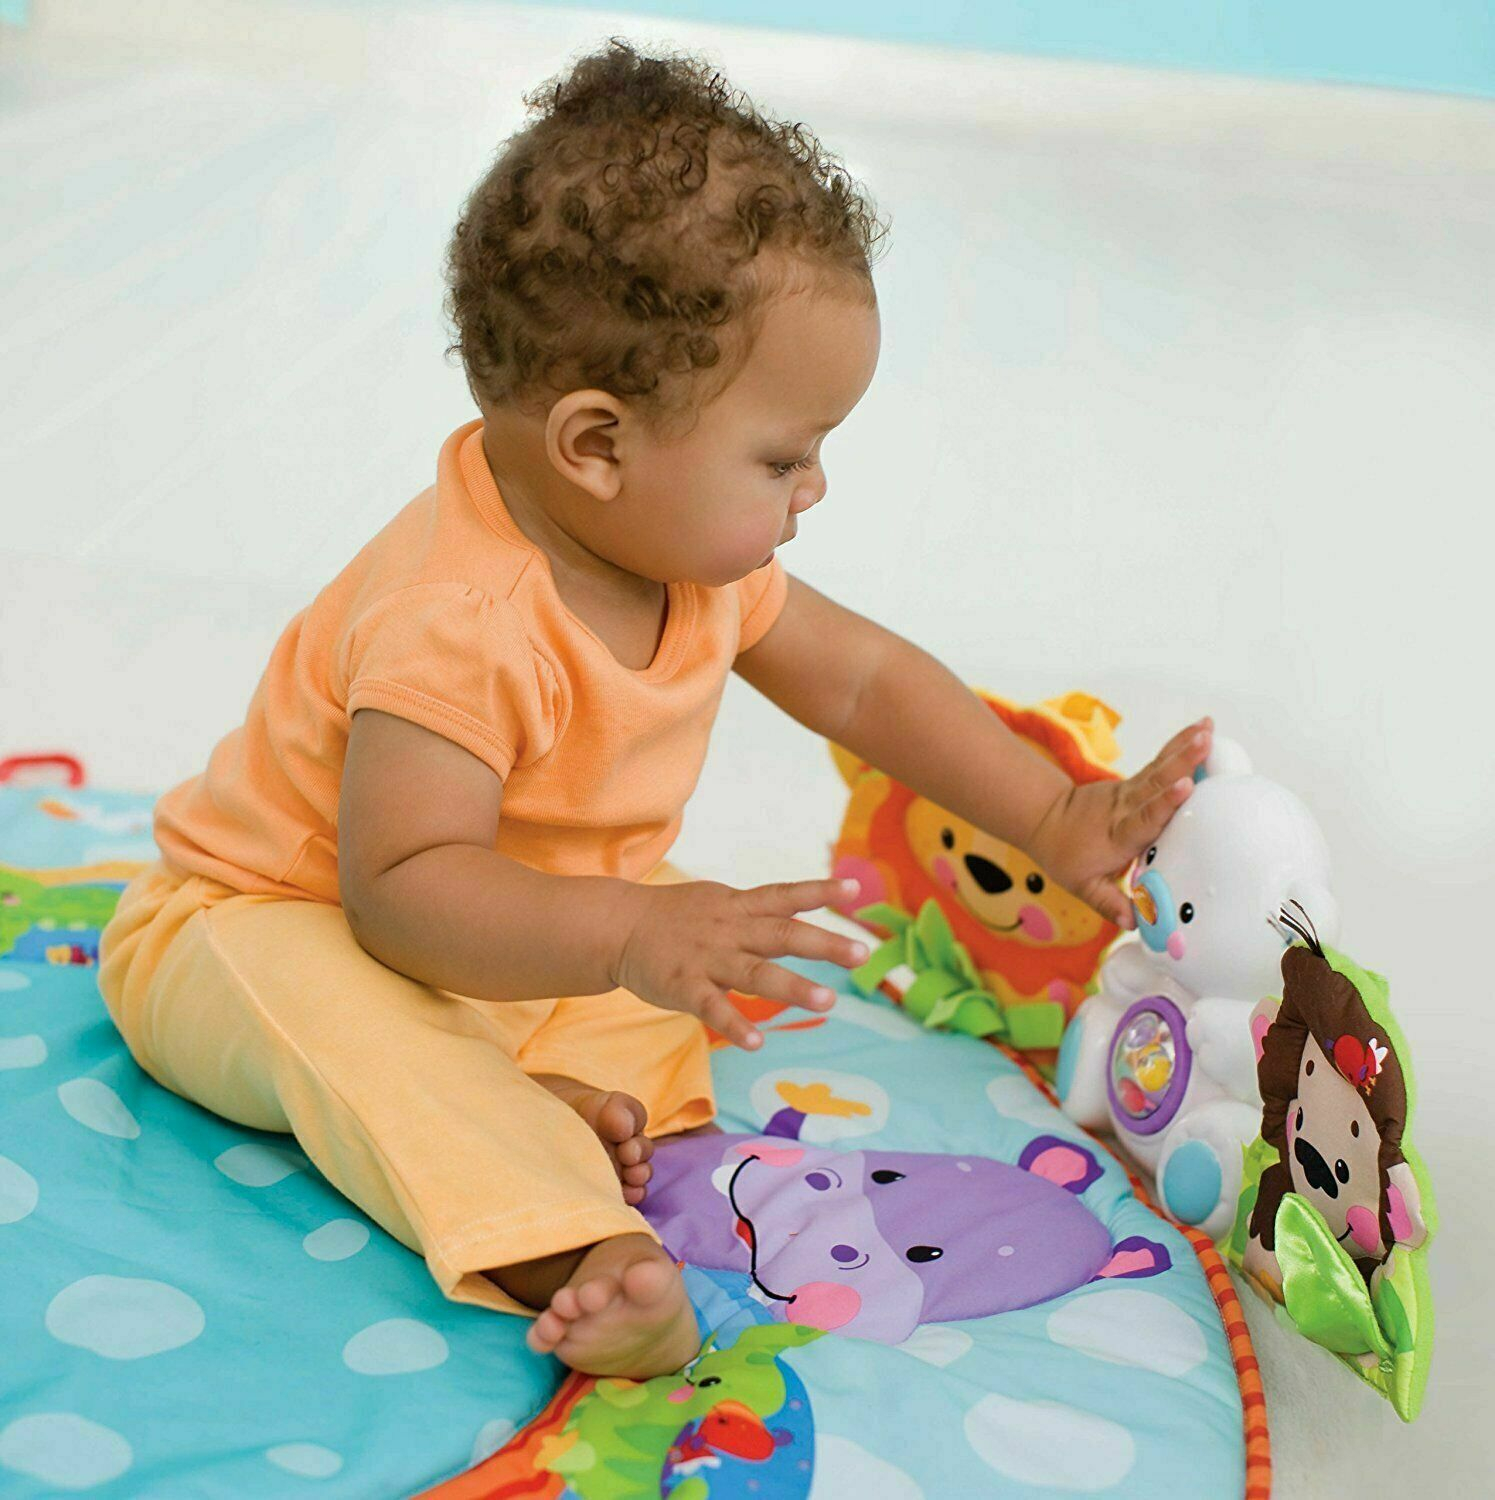 30 Balls UK Safety Guard Lion Shaped Baby Play Arch Mat Gym Cradle Dangle Toys